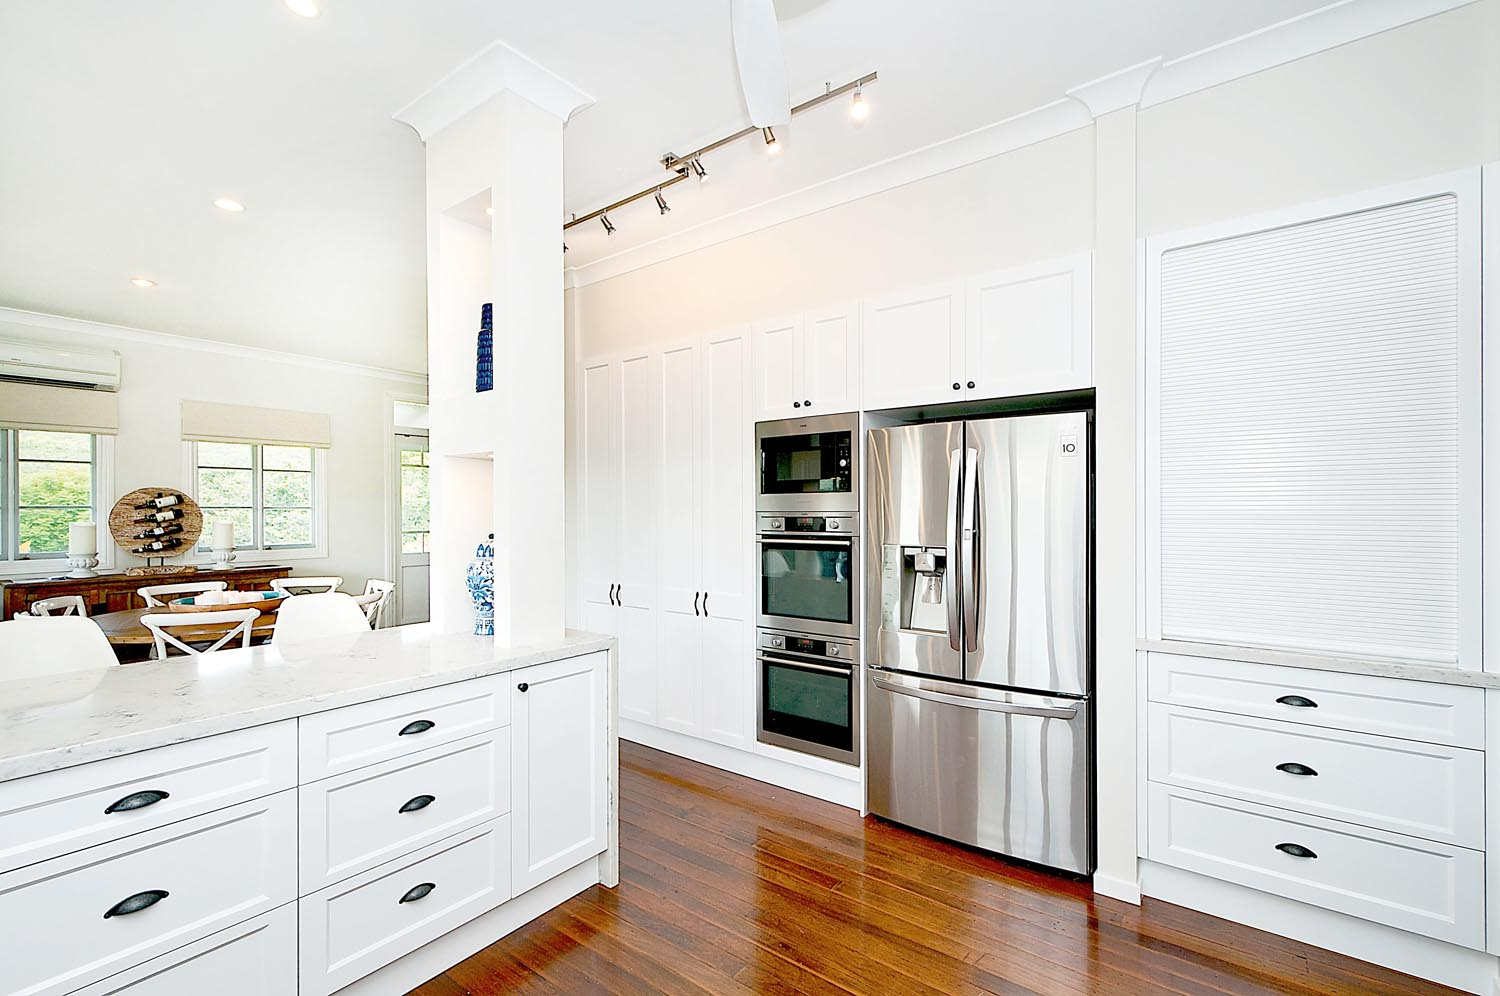 There's plenty of bench space in this spacious kitchen